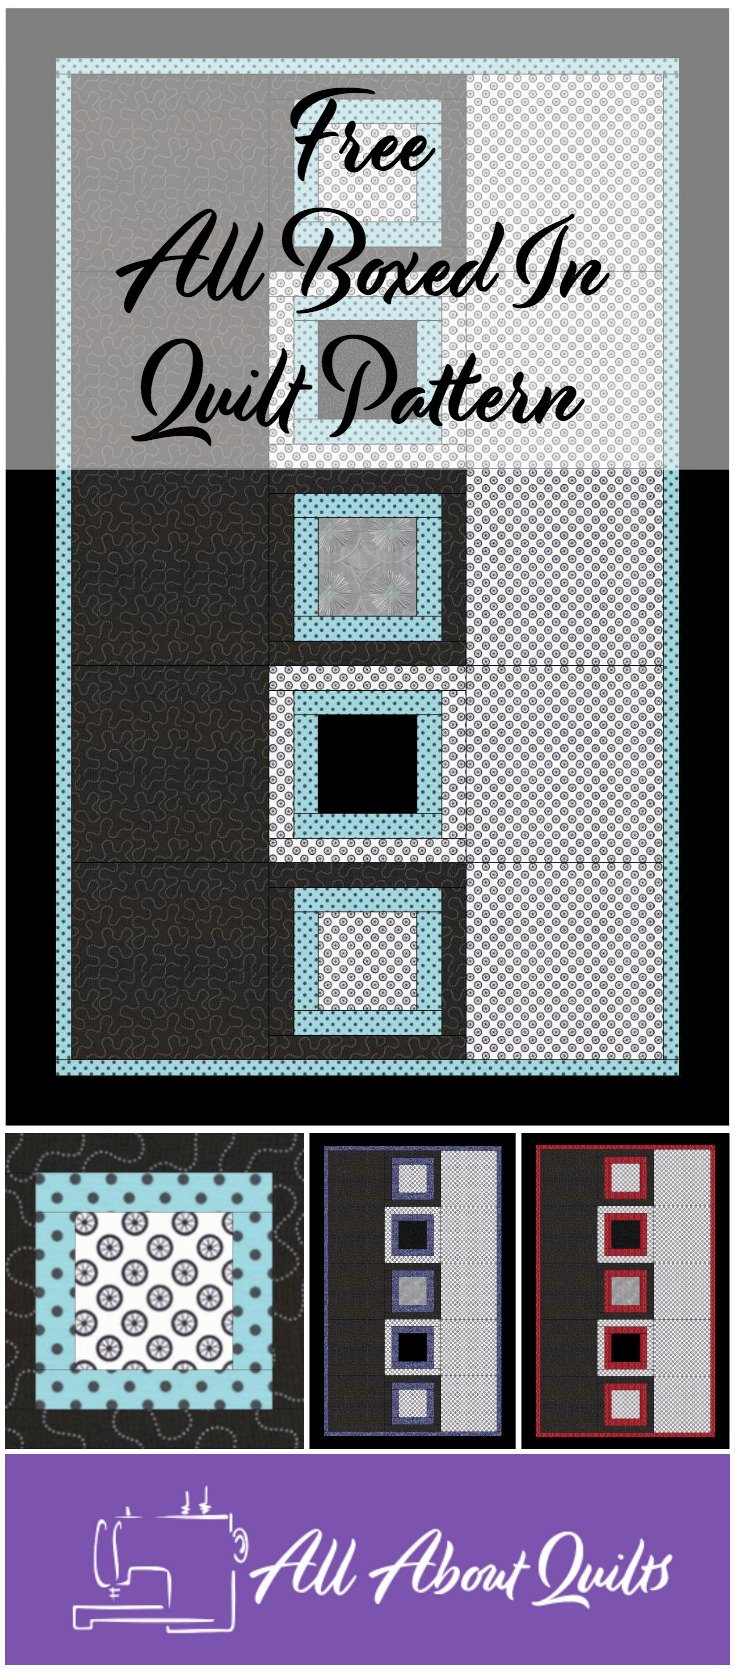 Free All Boxed In quilt pattern